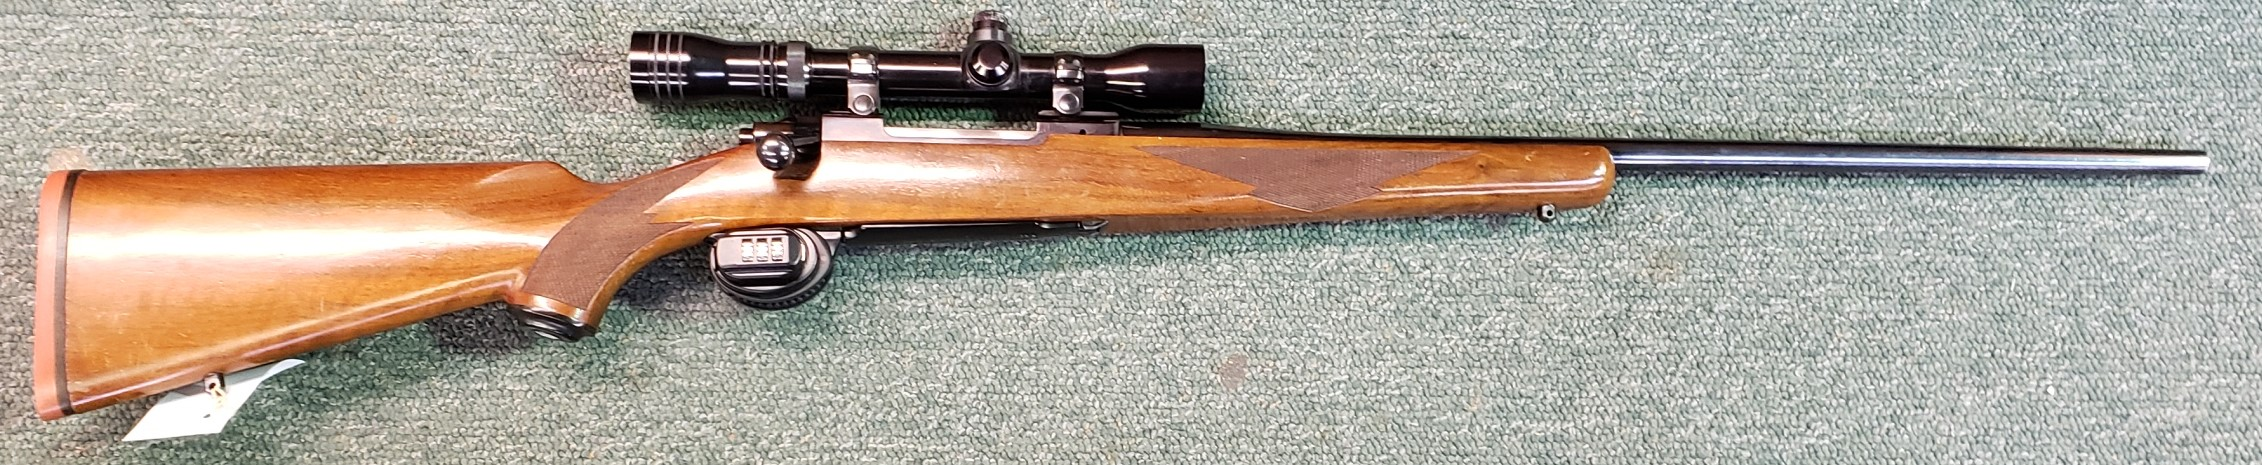 Ruger M77 7 Rem. Mag. with Scope (used)